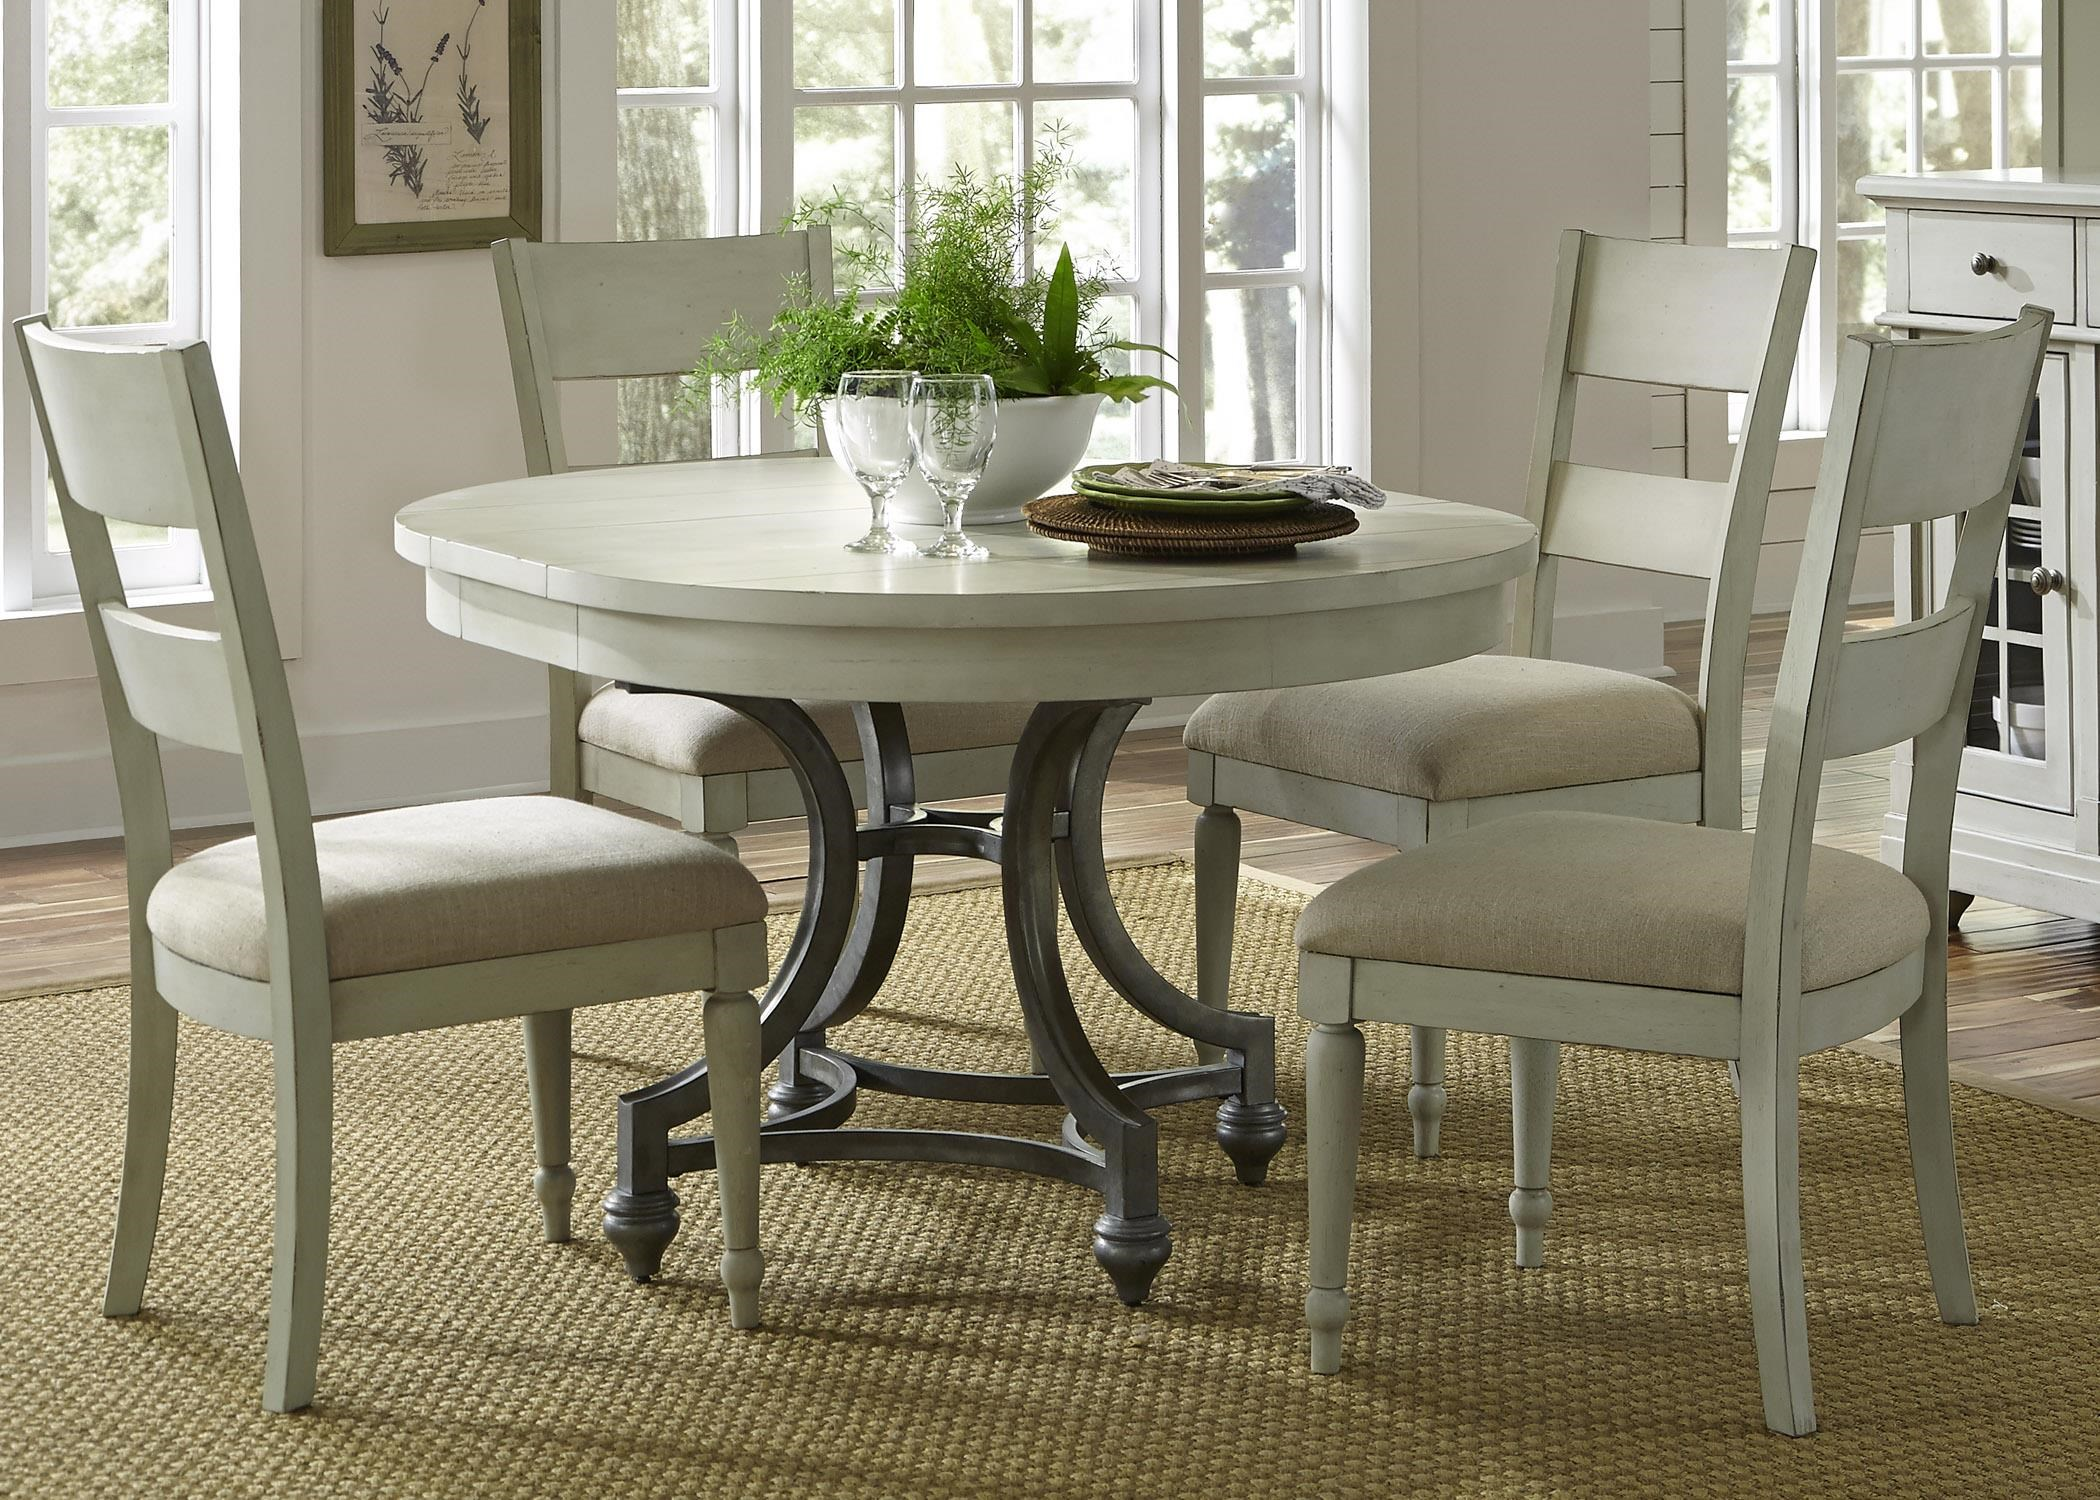 Liberty Furniture Harbor View Round Table with 4 Slat Back